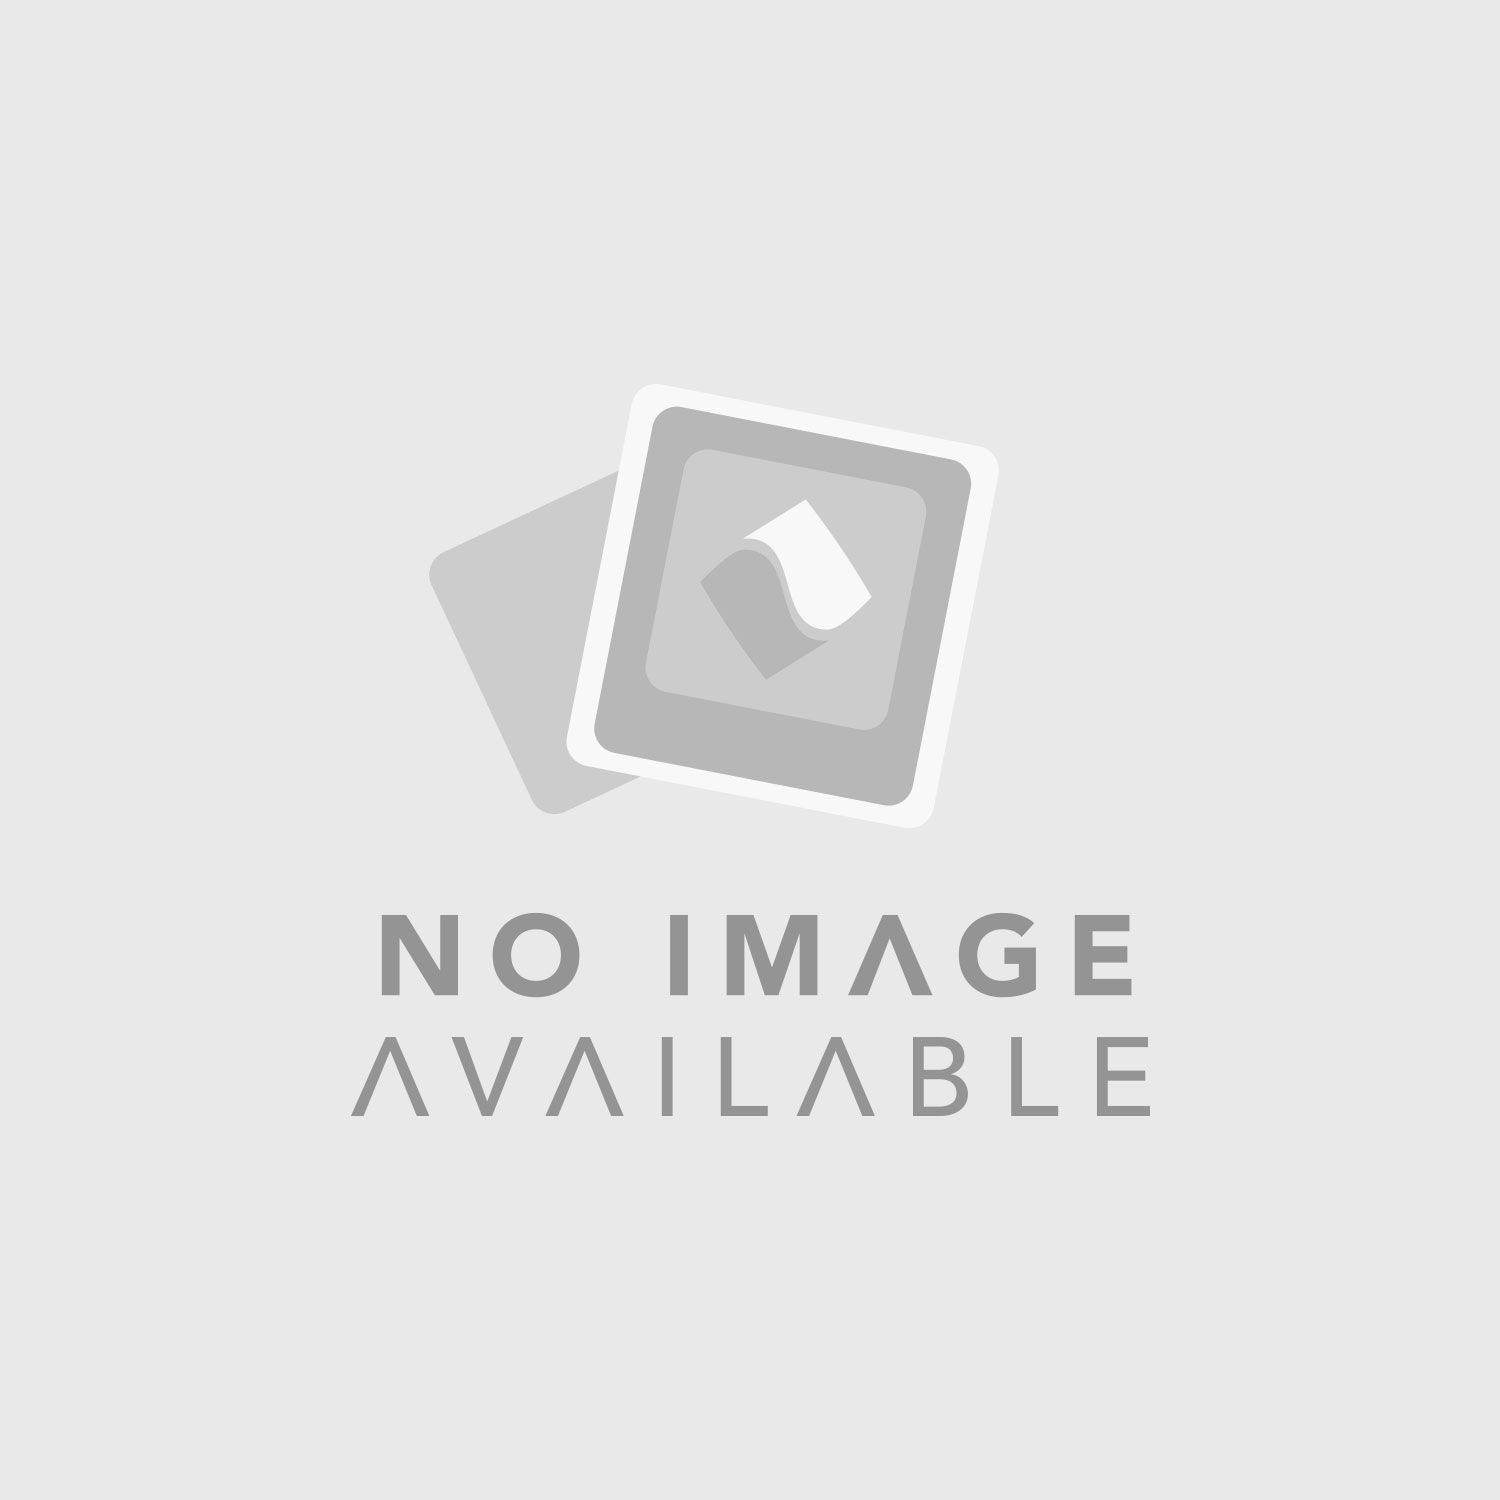 "ProTapes Pro 48 PVC Vinyl Safety Stripes Tape 2"" x 18yds (Black & Yellow Striped)"